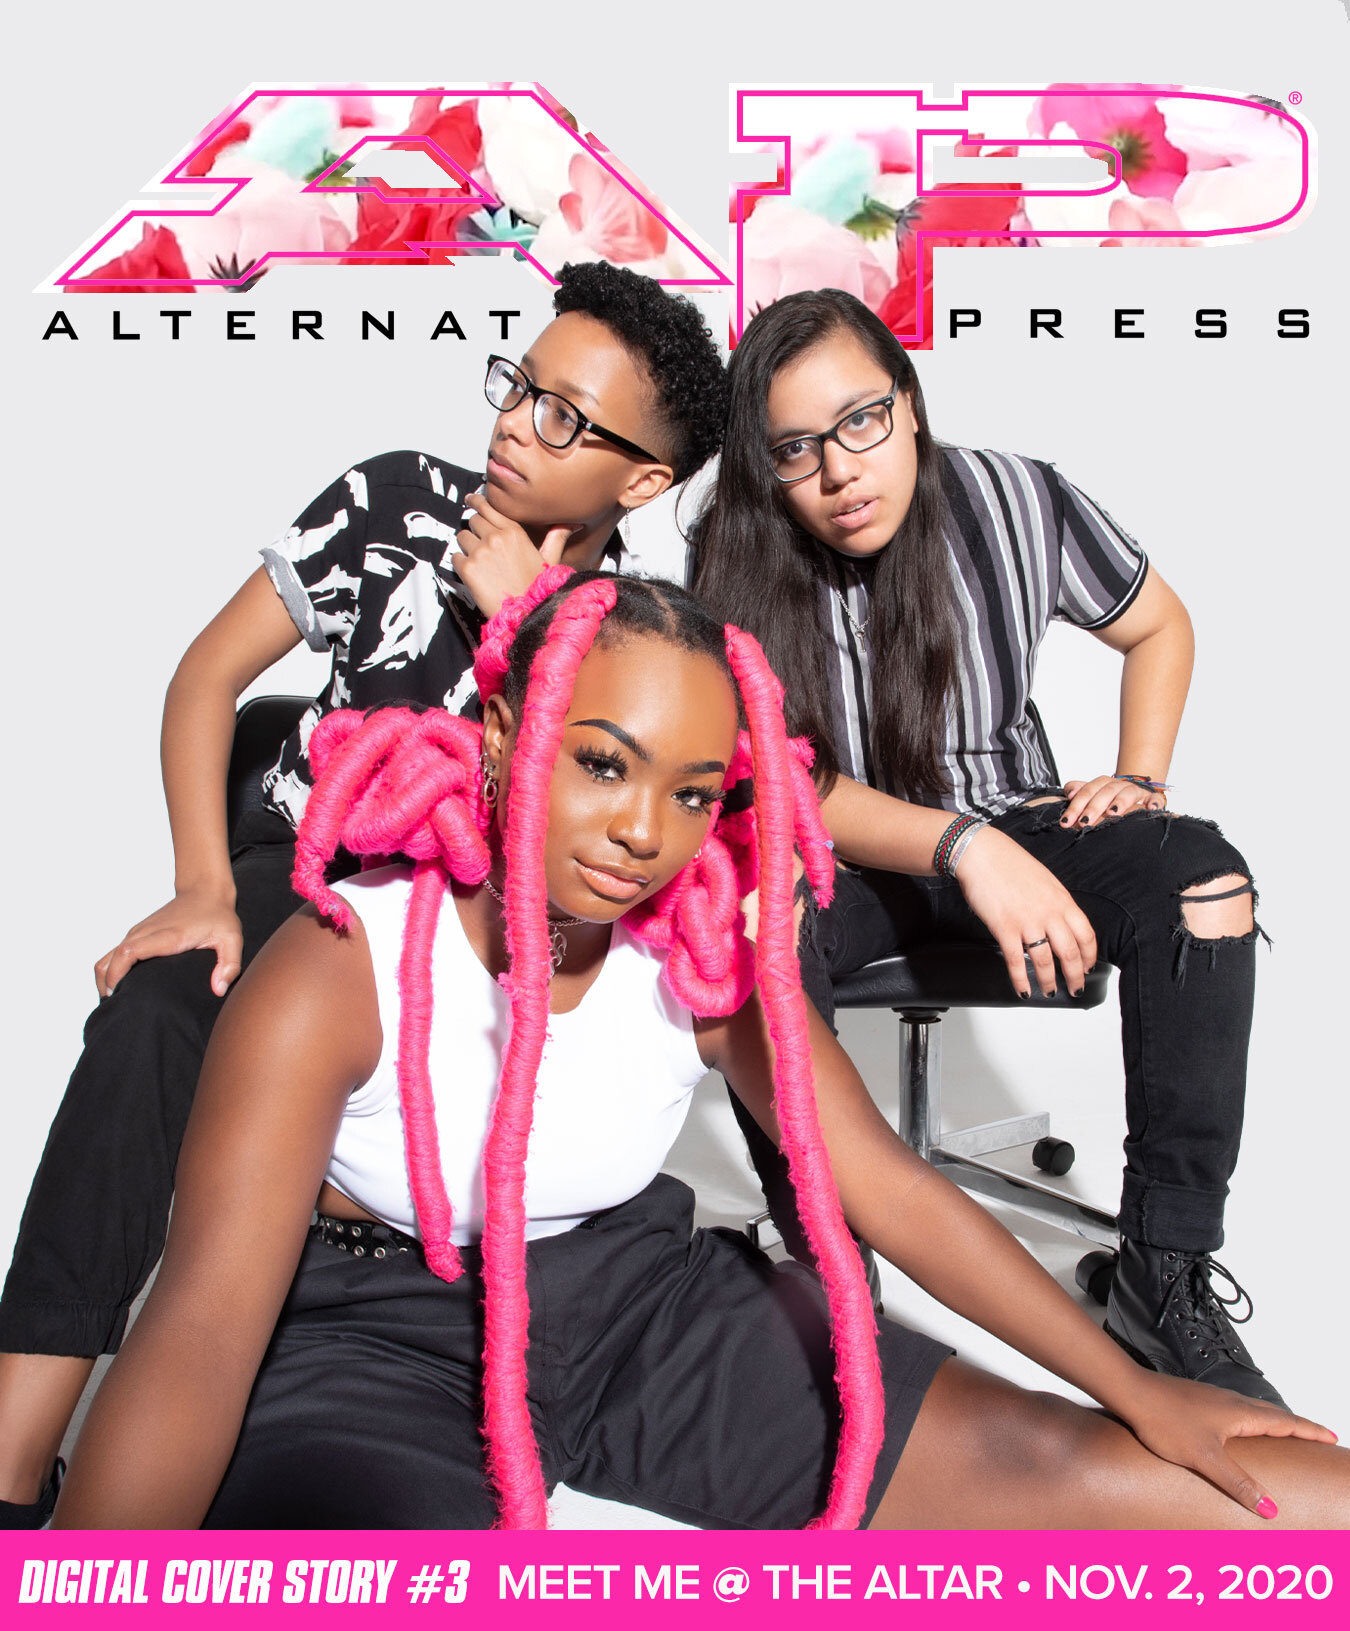 Meet Me @ The Altar digital cover 3 alternative press cover